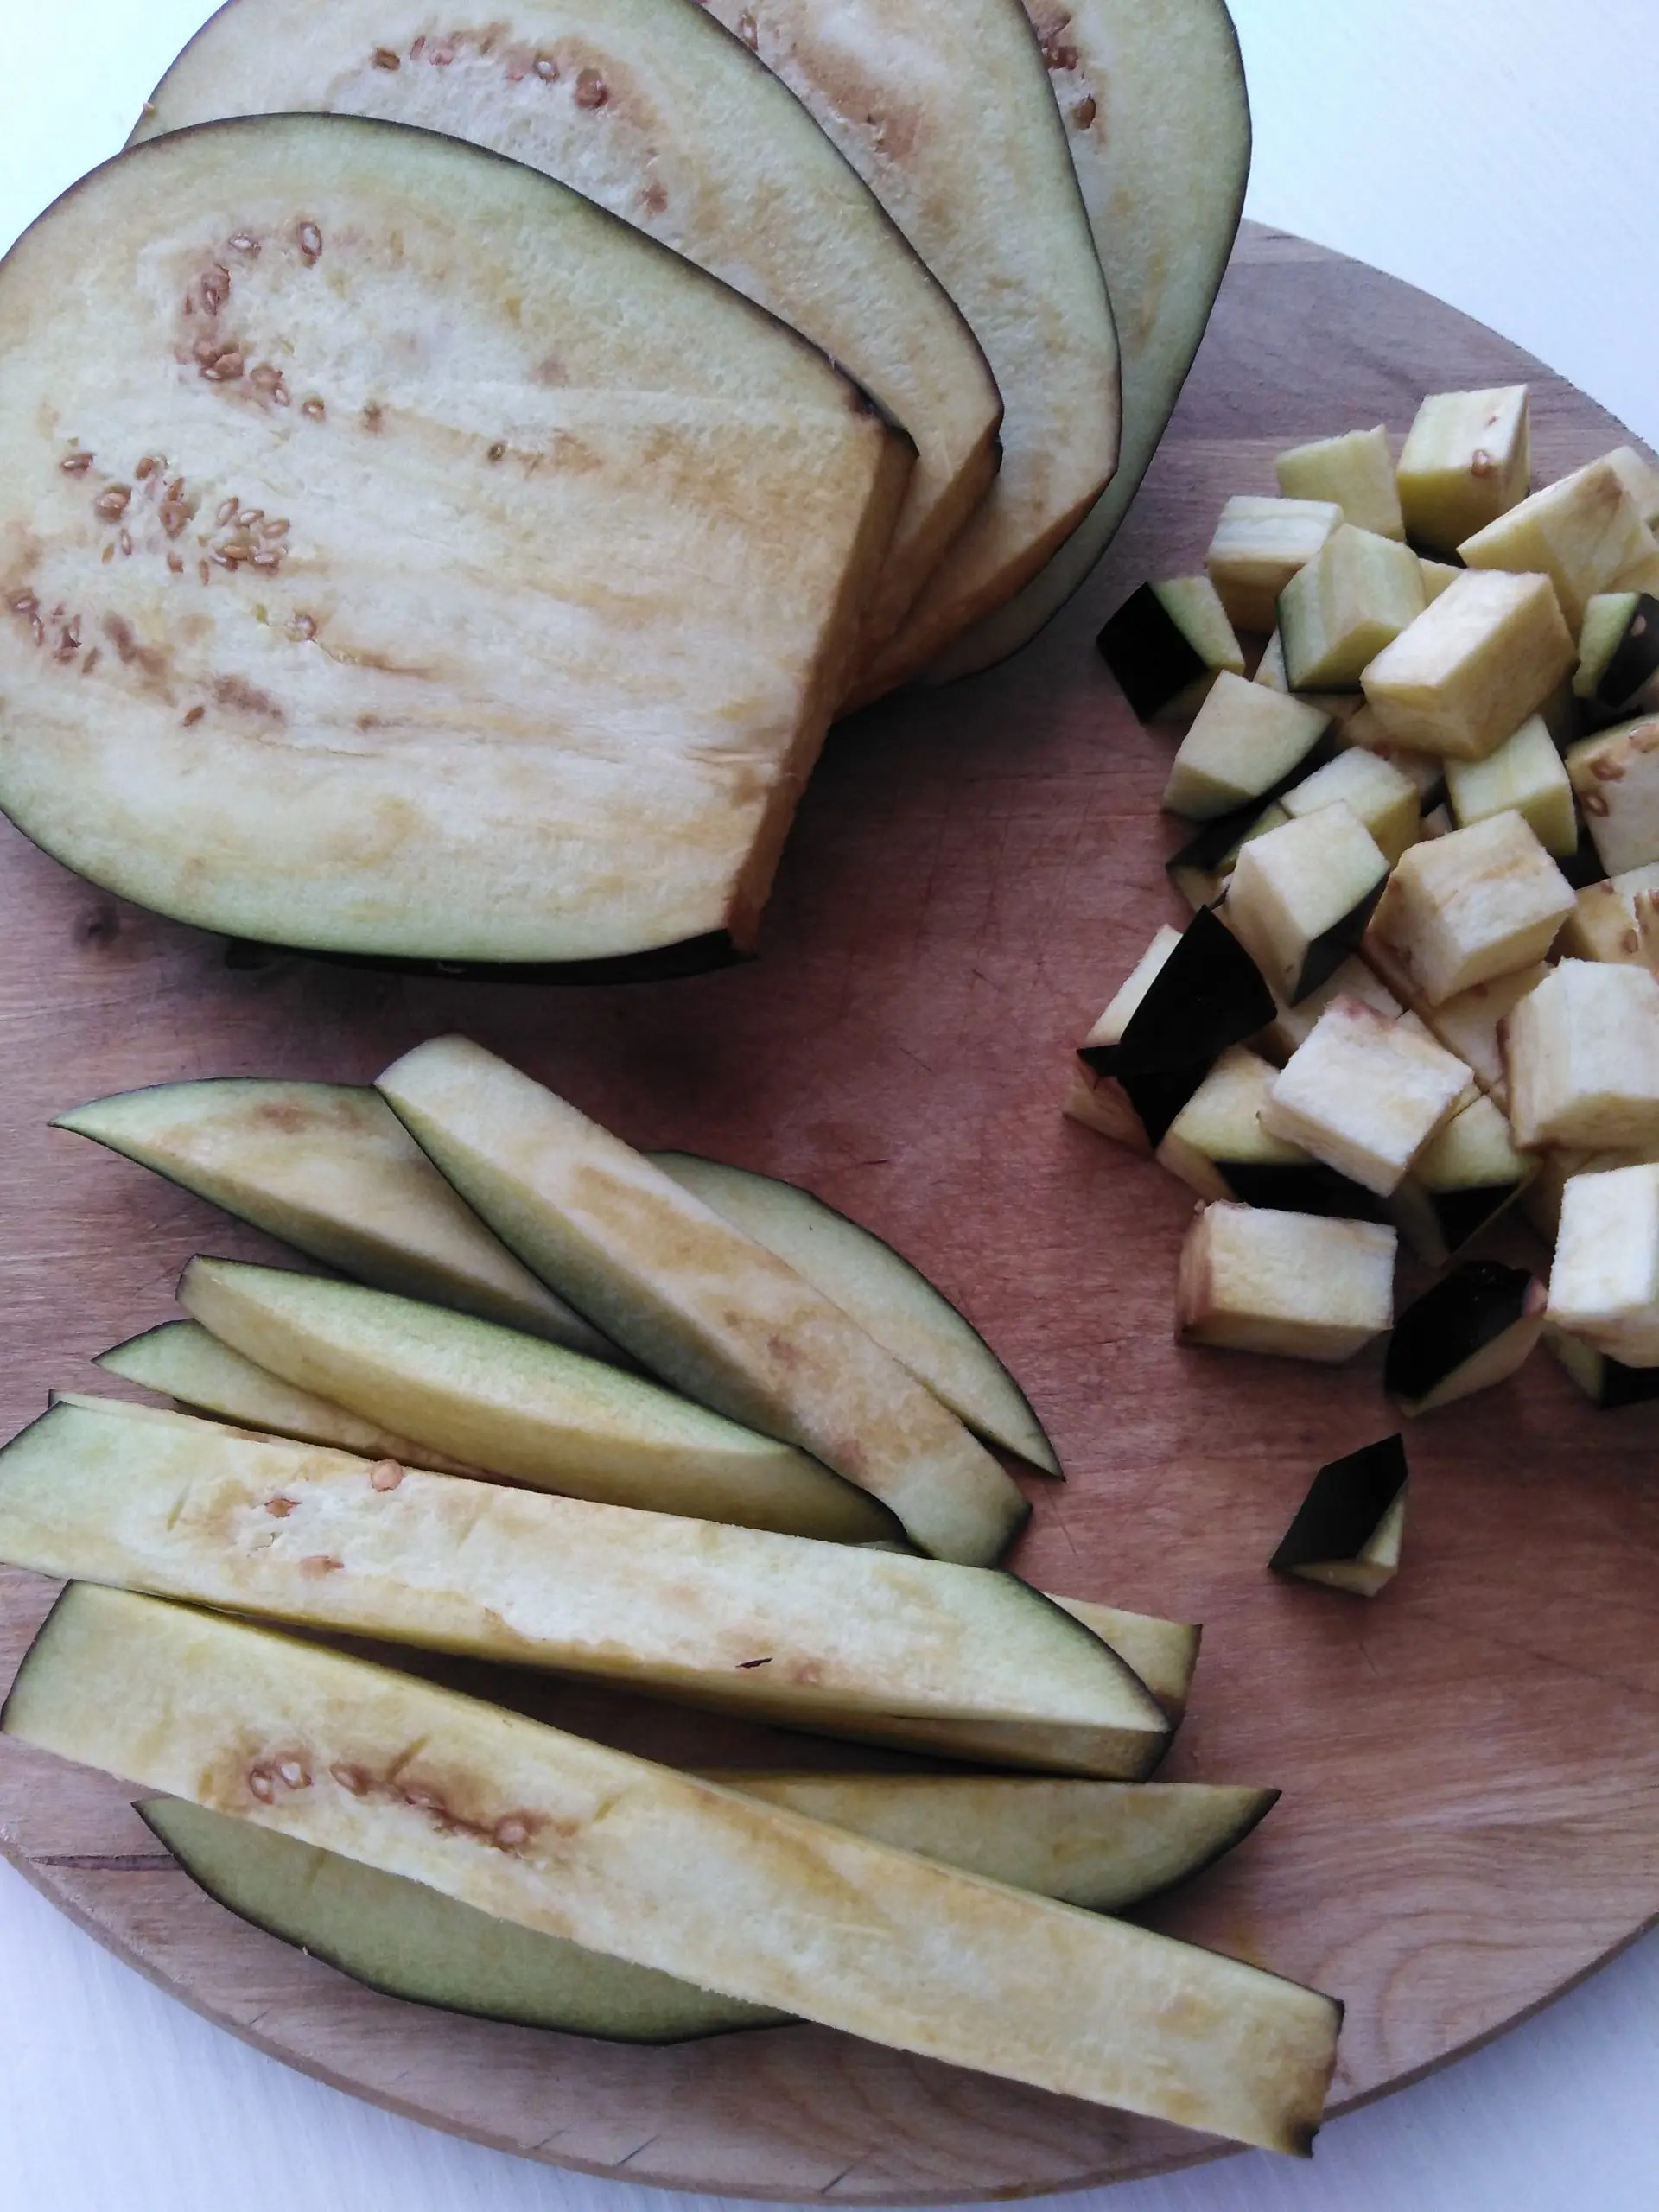 Halved, sliced and cubed eggplants on a wooden chopping board